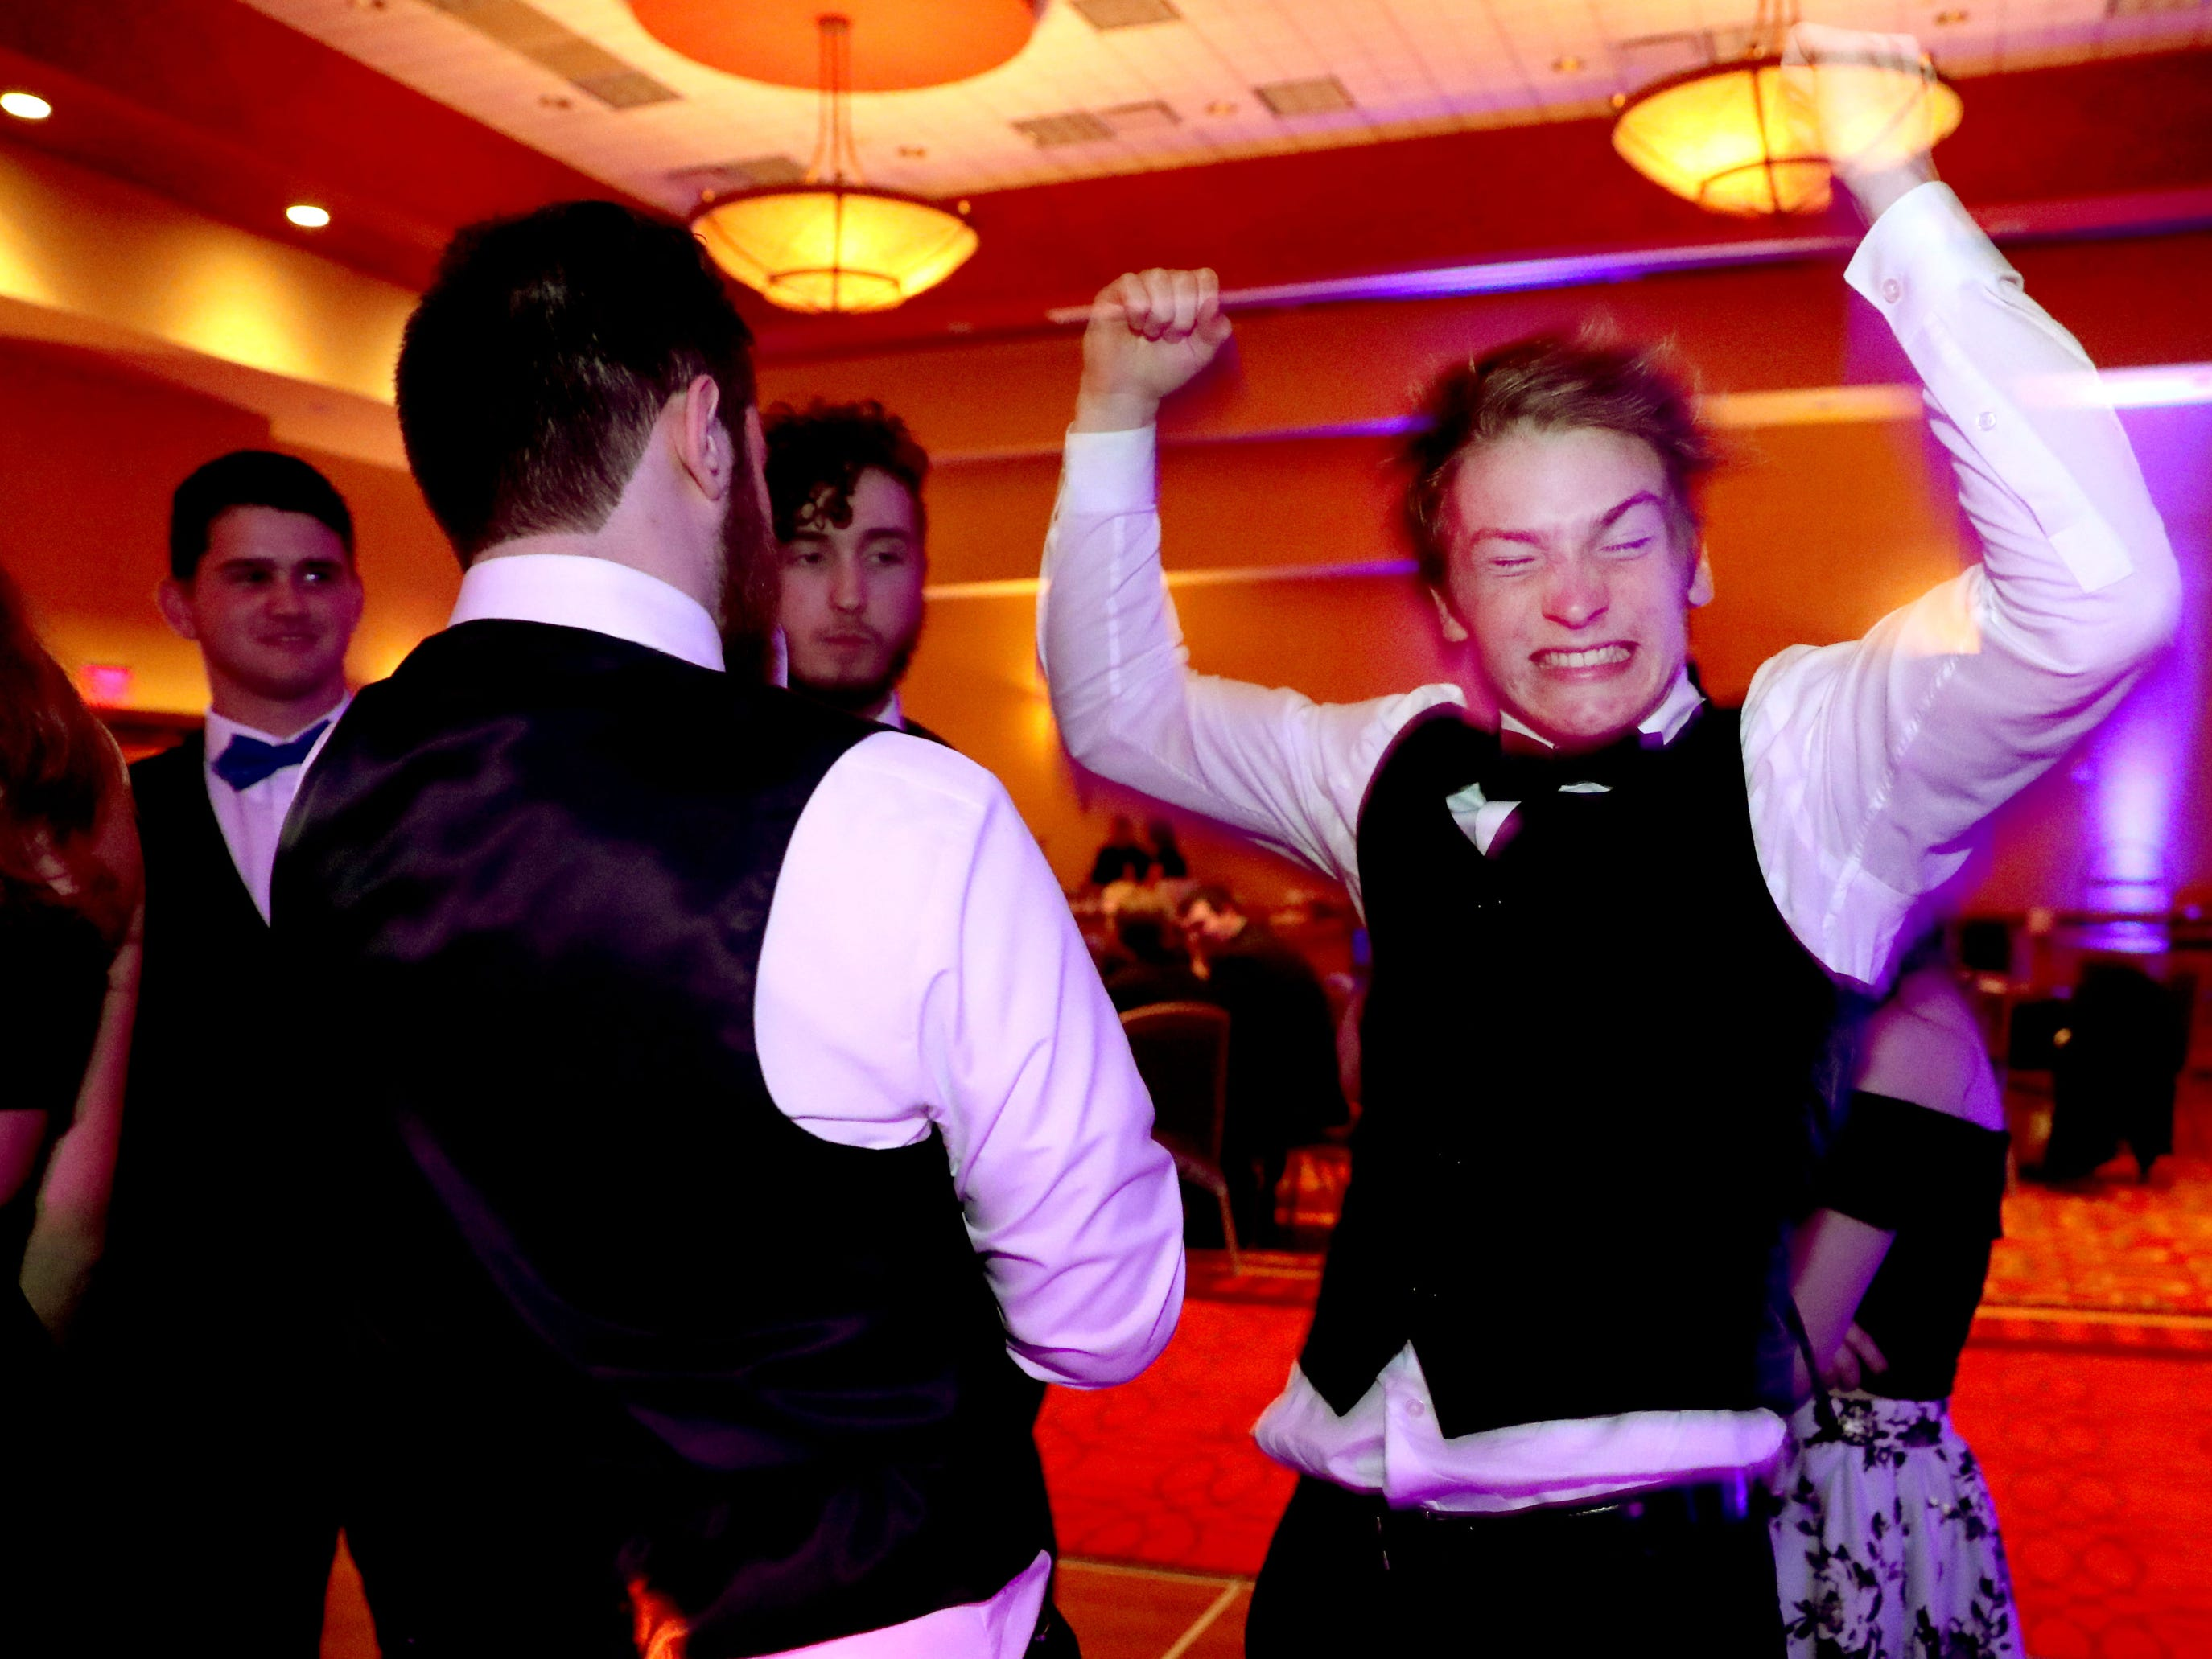 Christian d'Oliveira starts dancing on the dance floor at Eagleville's Prom held at Embassy Suites, in Murfreesboro on Thursday April 5, 2019.